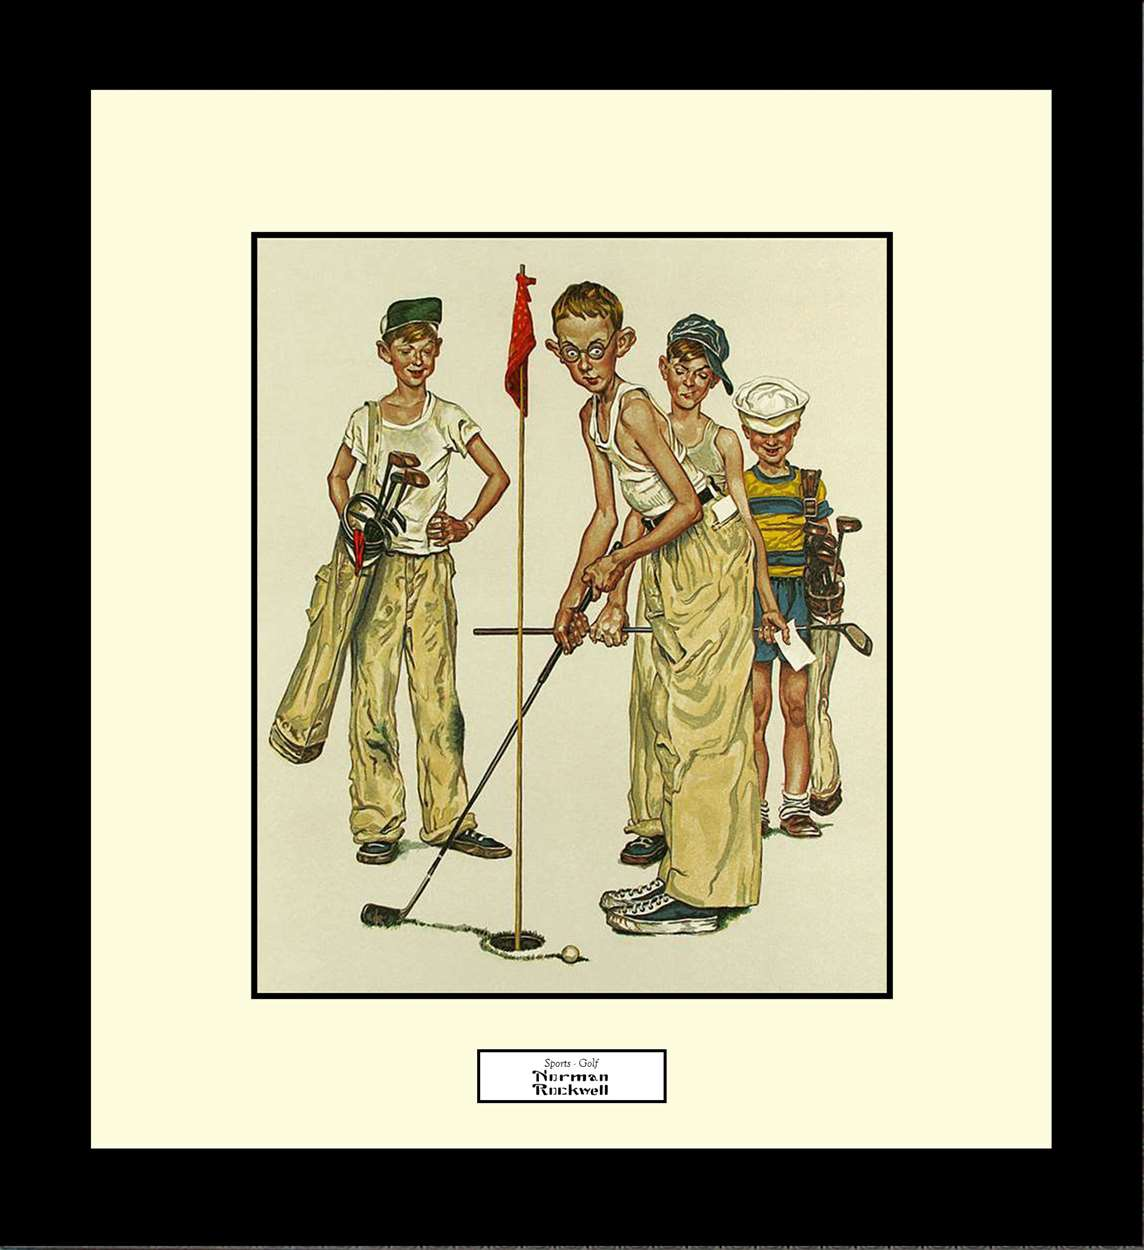 Sports - Golf, Norman Rockwell, 16x18